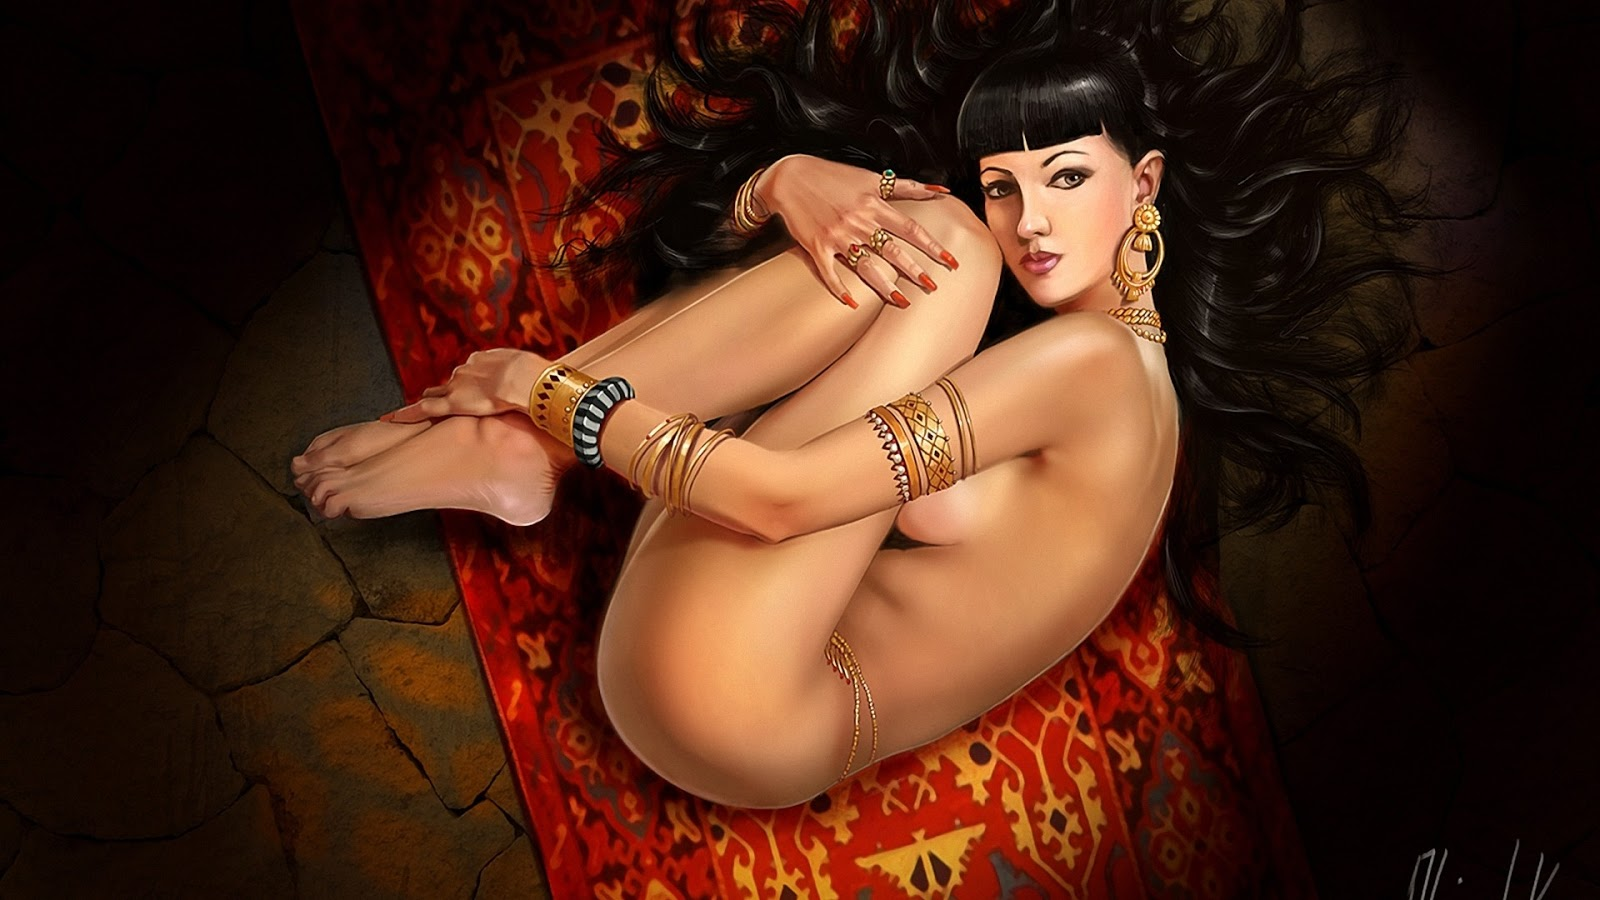 Naked women artwork and wallpapers sexy galleries